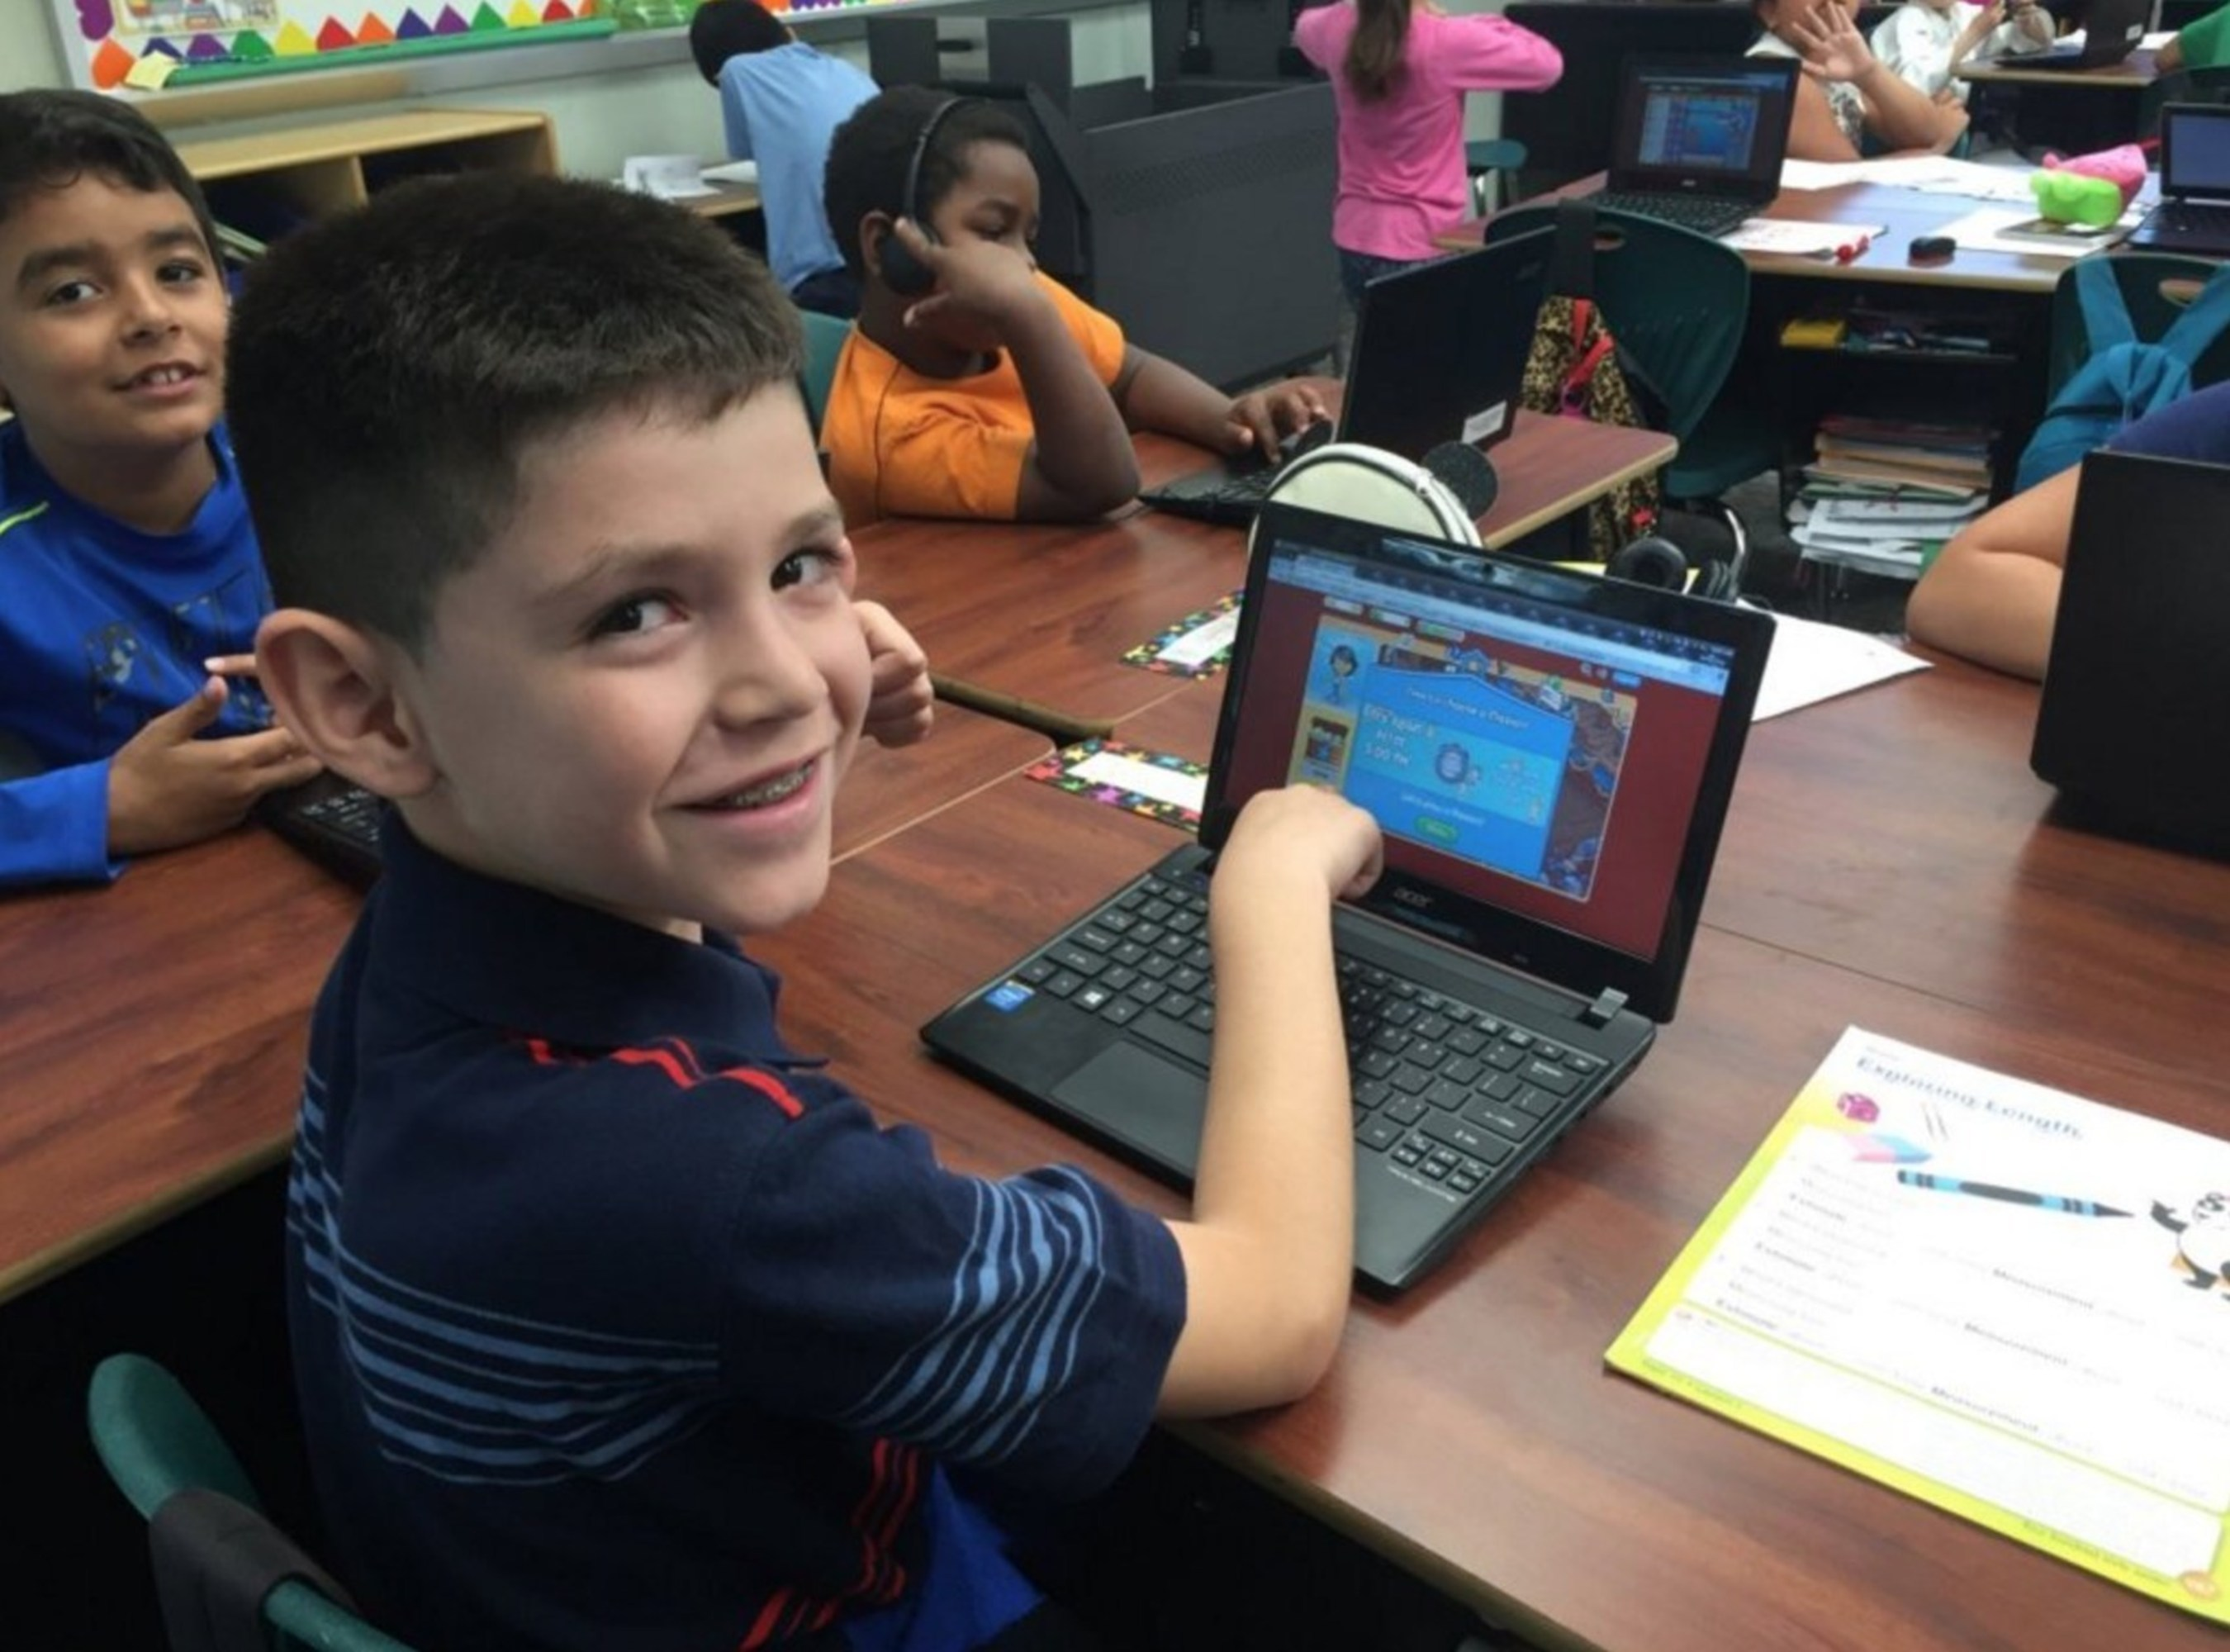 Students see 18% higher SBAC scores with Sokikom.